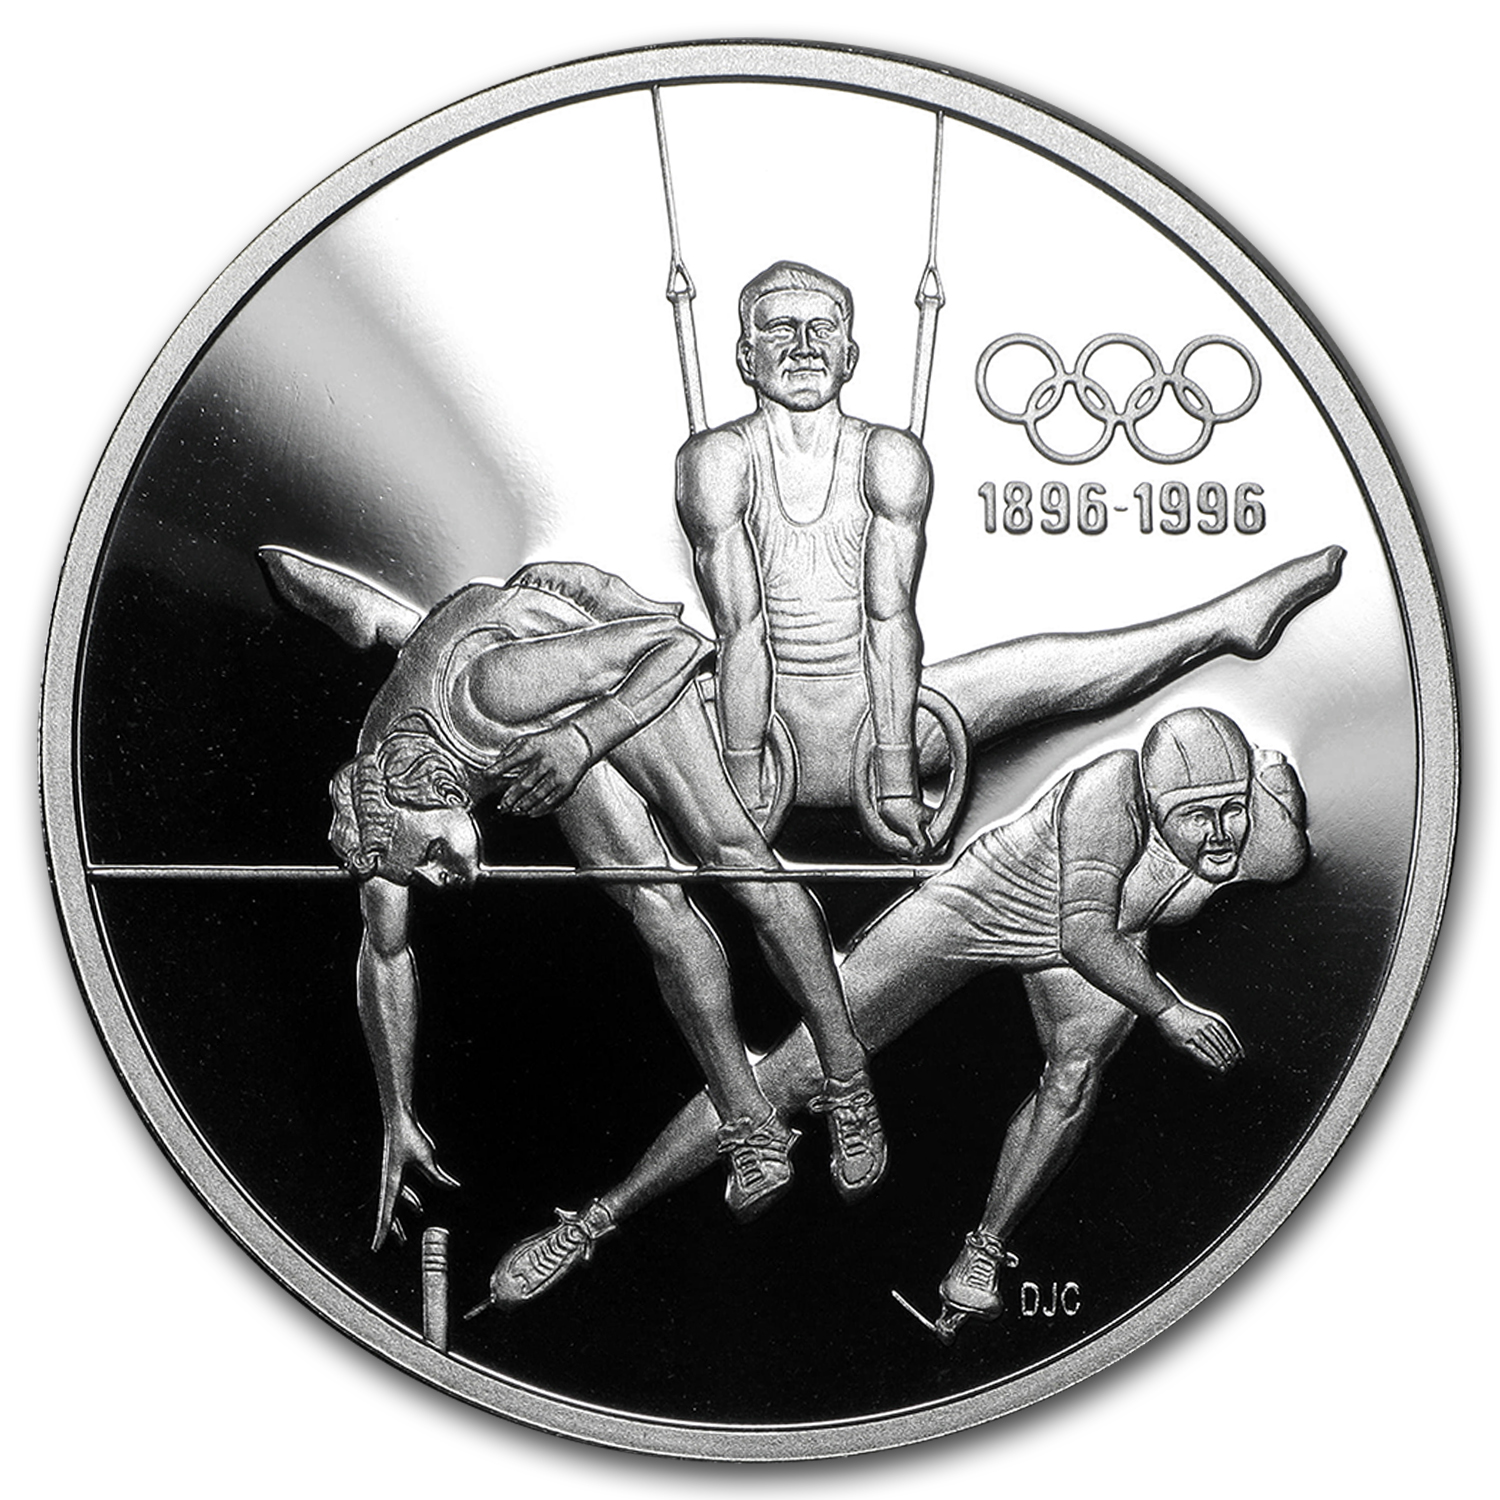 1992 Canada $15 Silver Proof (Olympics)